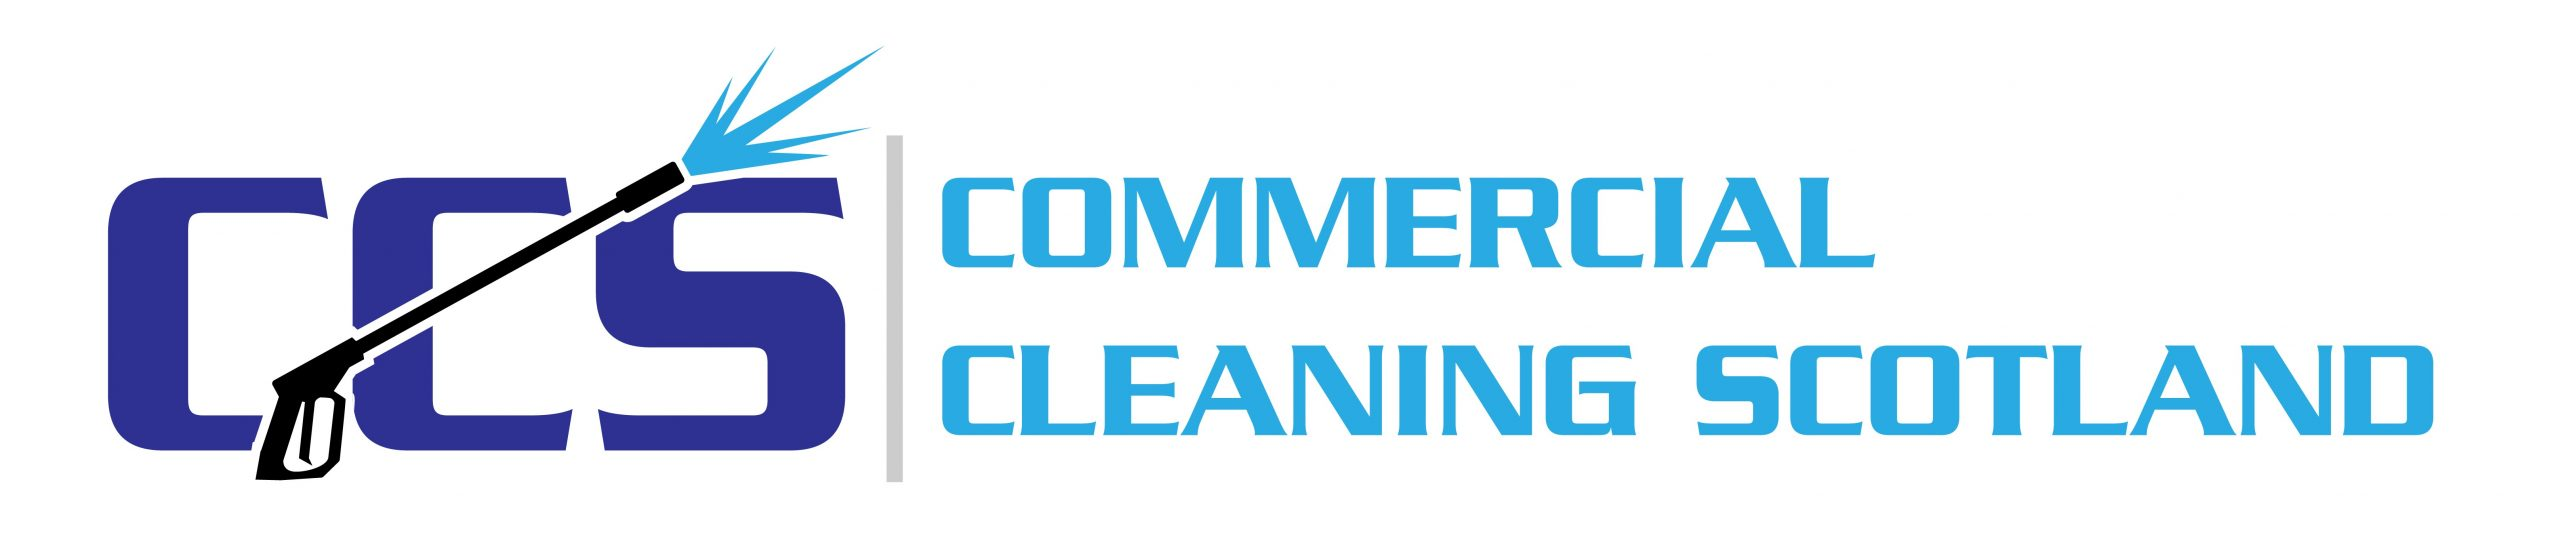 Commercial Cleaning Scotland